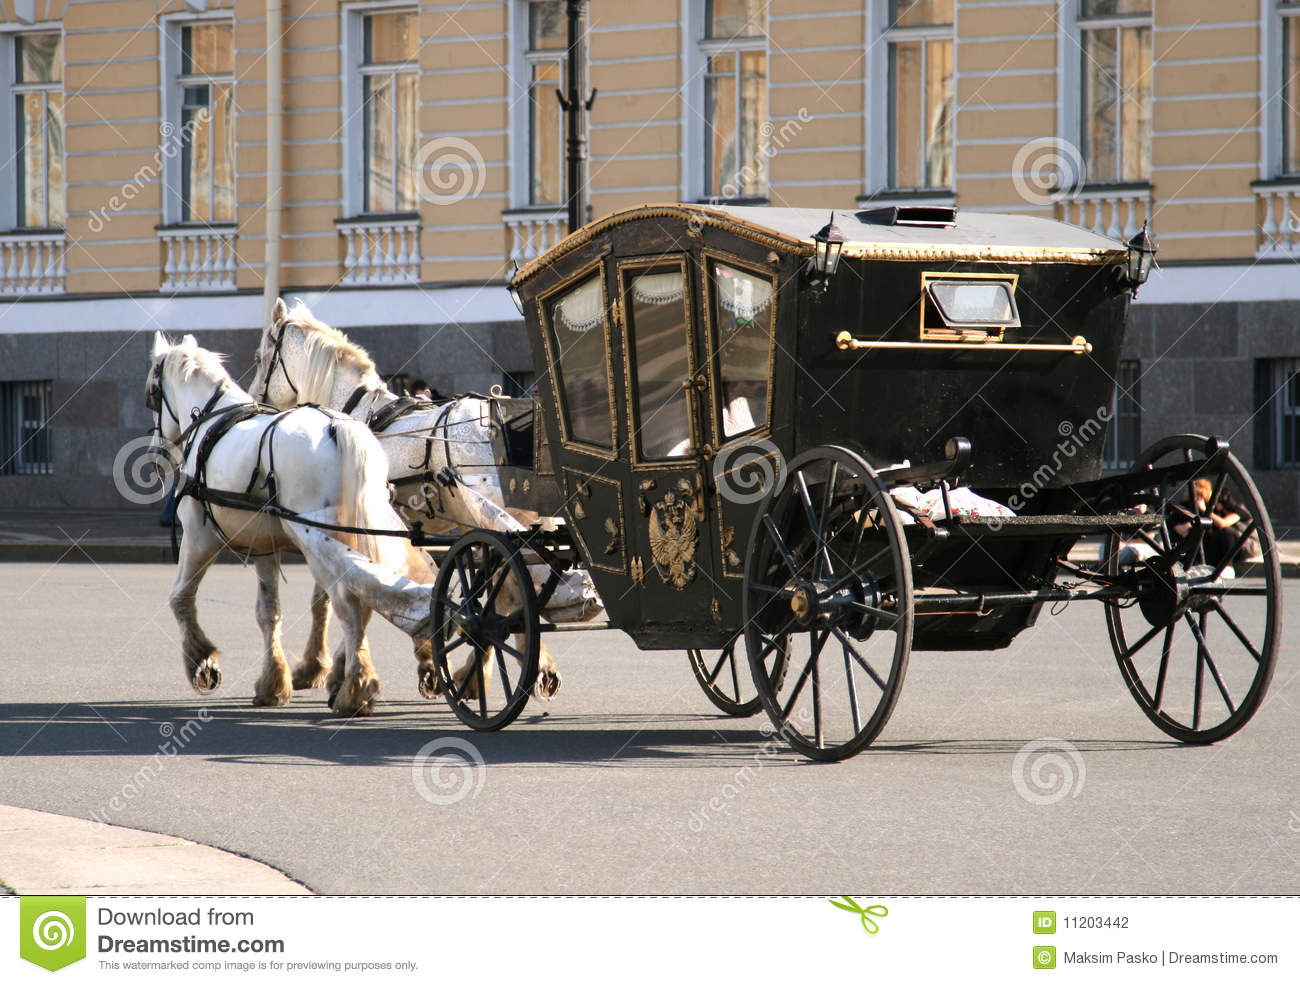 Horses pulling carriage